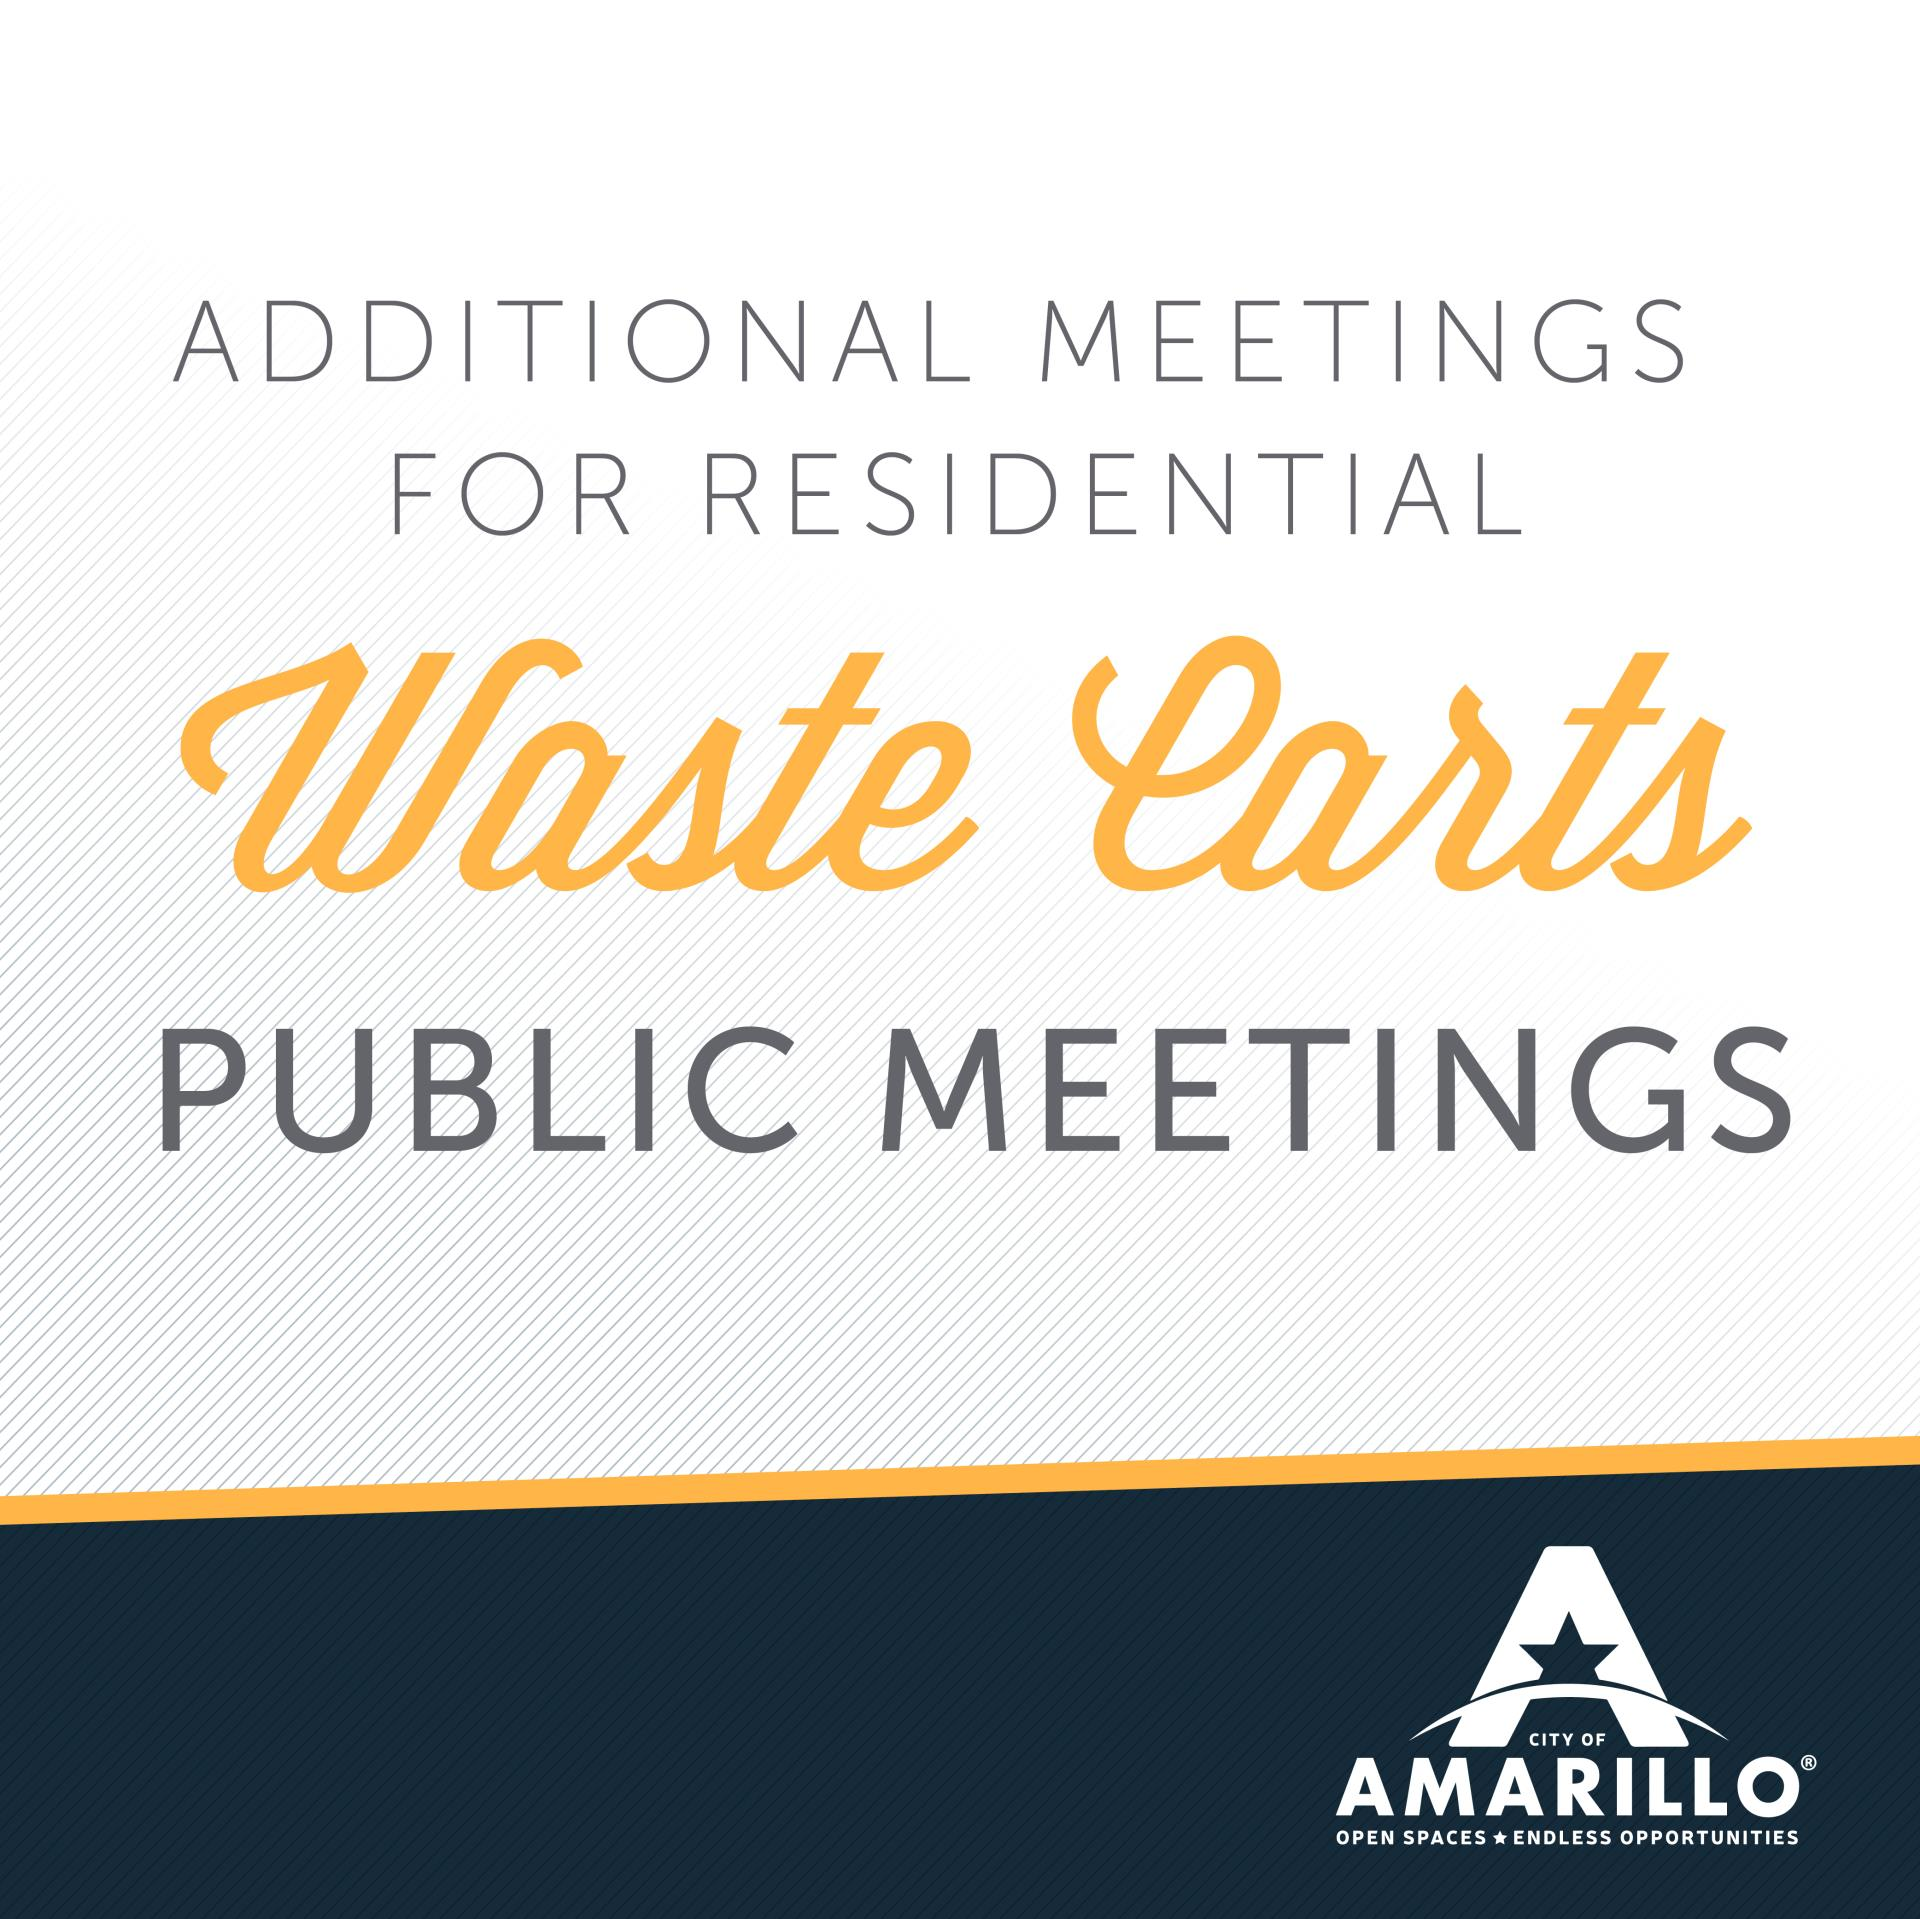 Additional Meetings Scheduled for Proposed Waste Carts